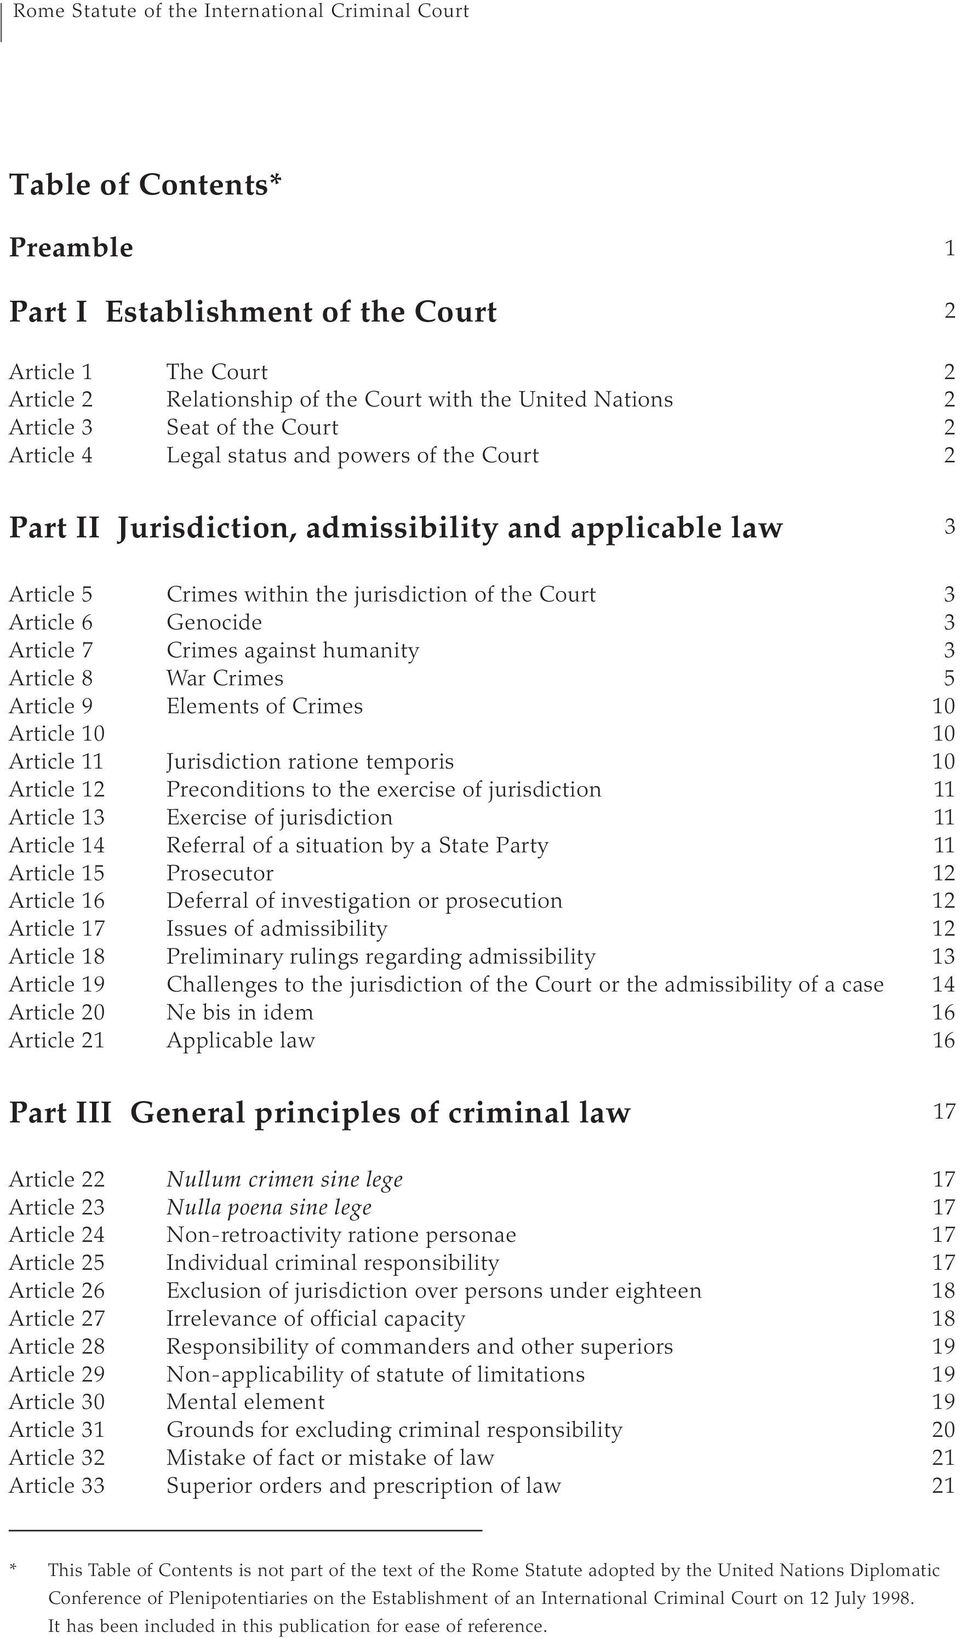 humanity 3 Article 8 War Crimes 5 Article 9 Elements of Crimes 10 Article 10 10 Article 11 Jurisdiction ratione temporis 10 Article 12 Preconditions to the exercise of jurisdiction 11 Article 13